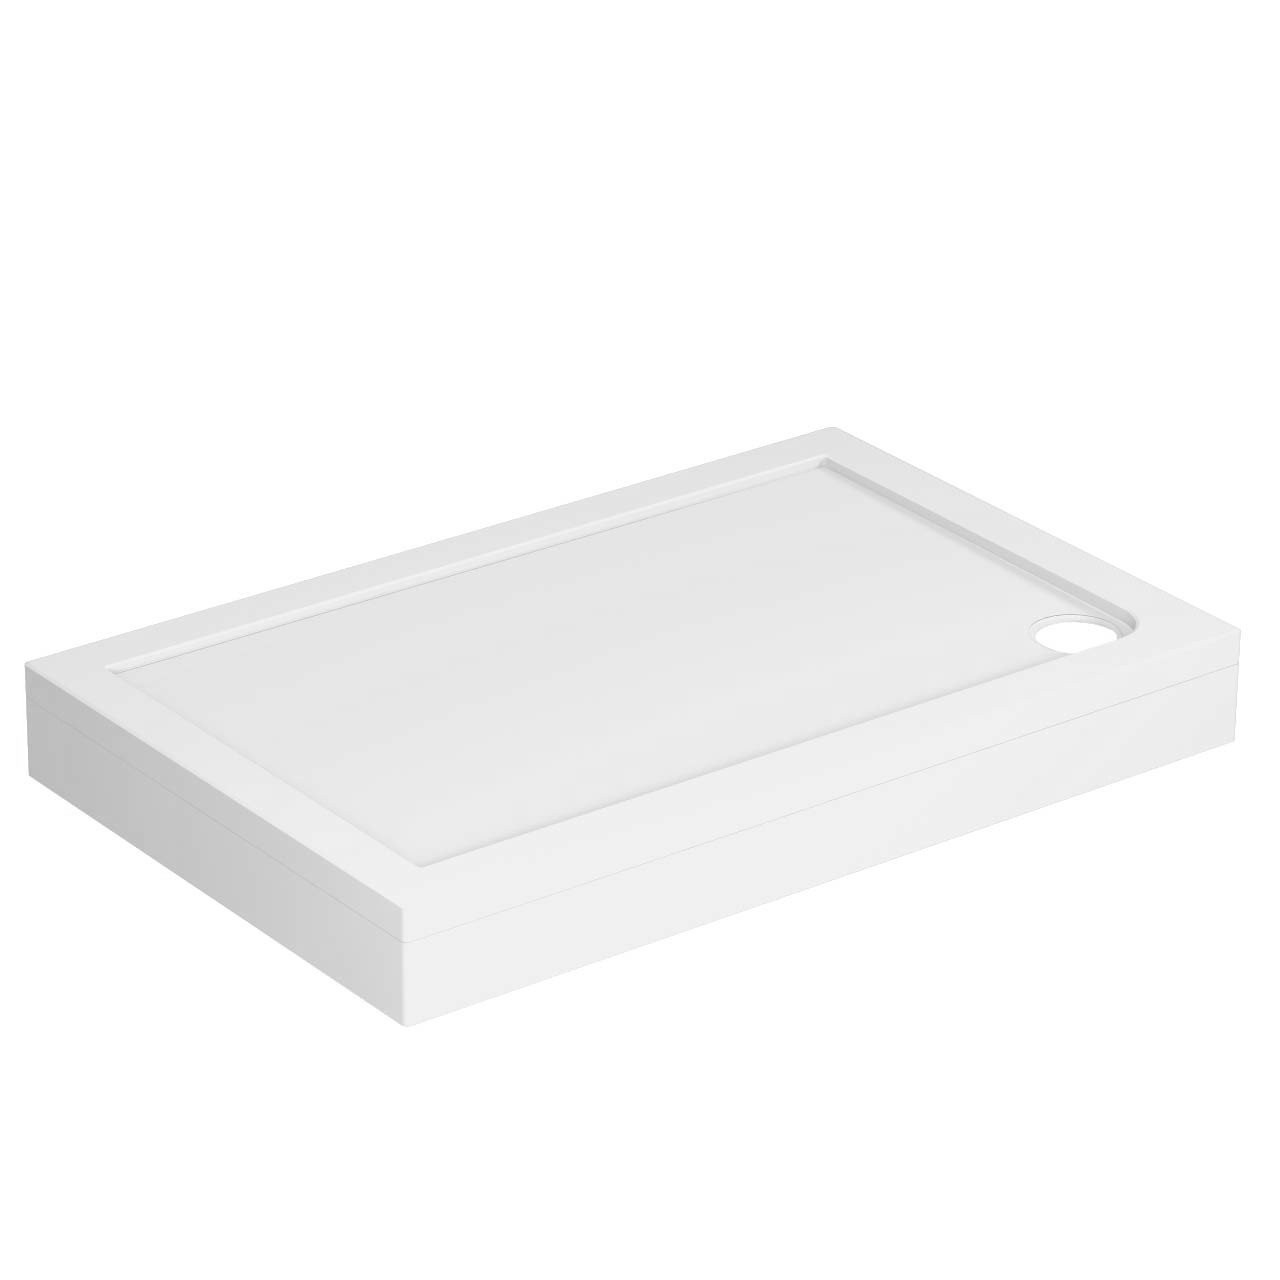 40mm Pearlstone 1100 x 700 Rectangular Shower Tray & Plinth